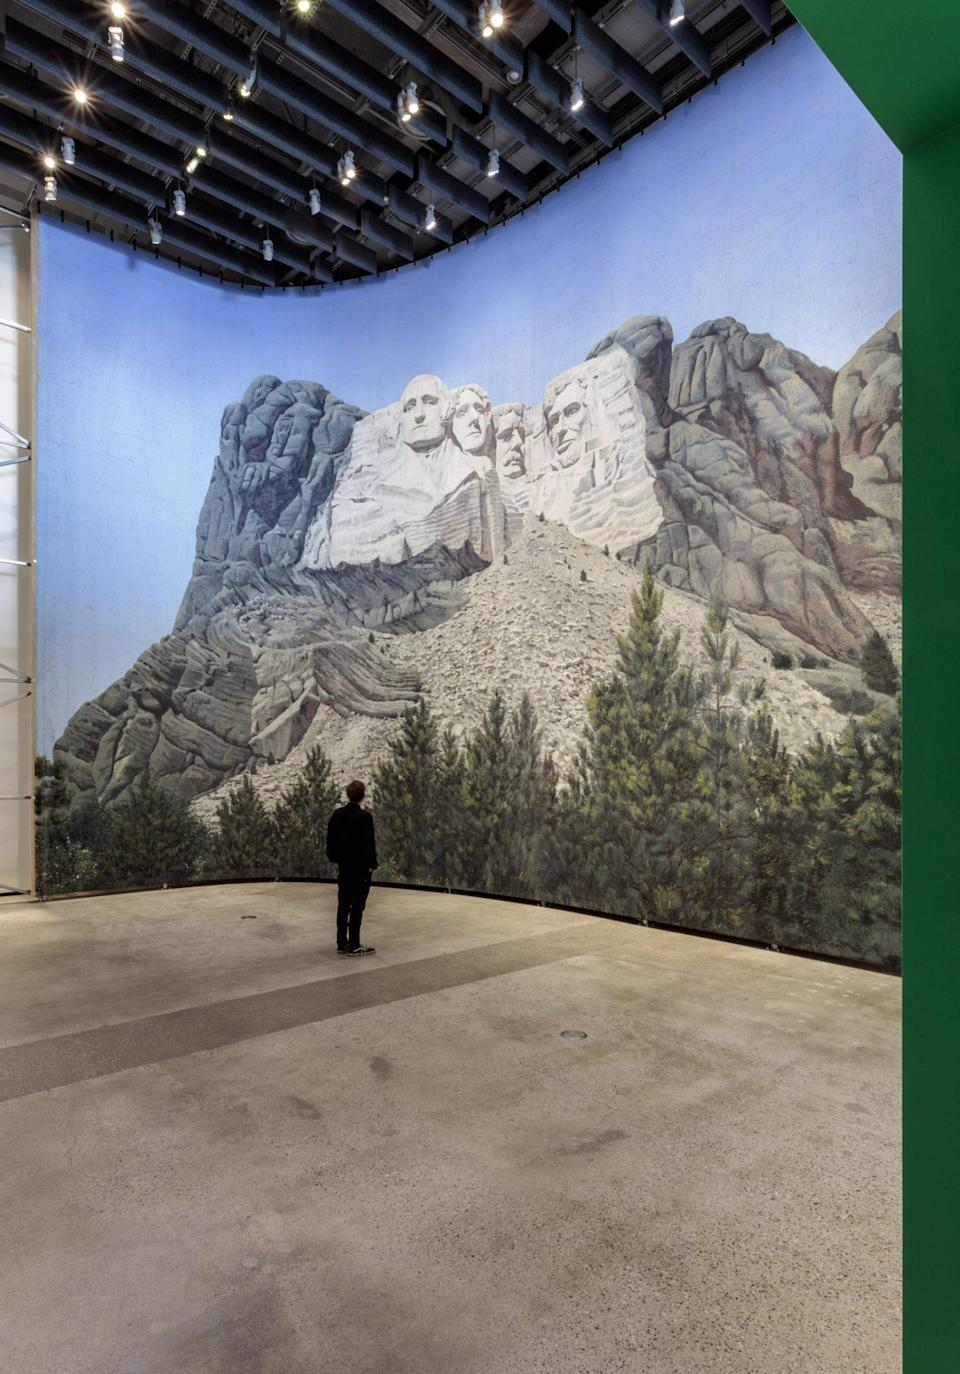 <p>Another gallery, Backdrop: An Invisble Art, boasts large set pieces like this Mount Rushmore from Alfred Hitchcock's <em>North by Northwest.</em></p>